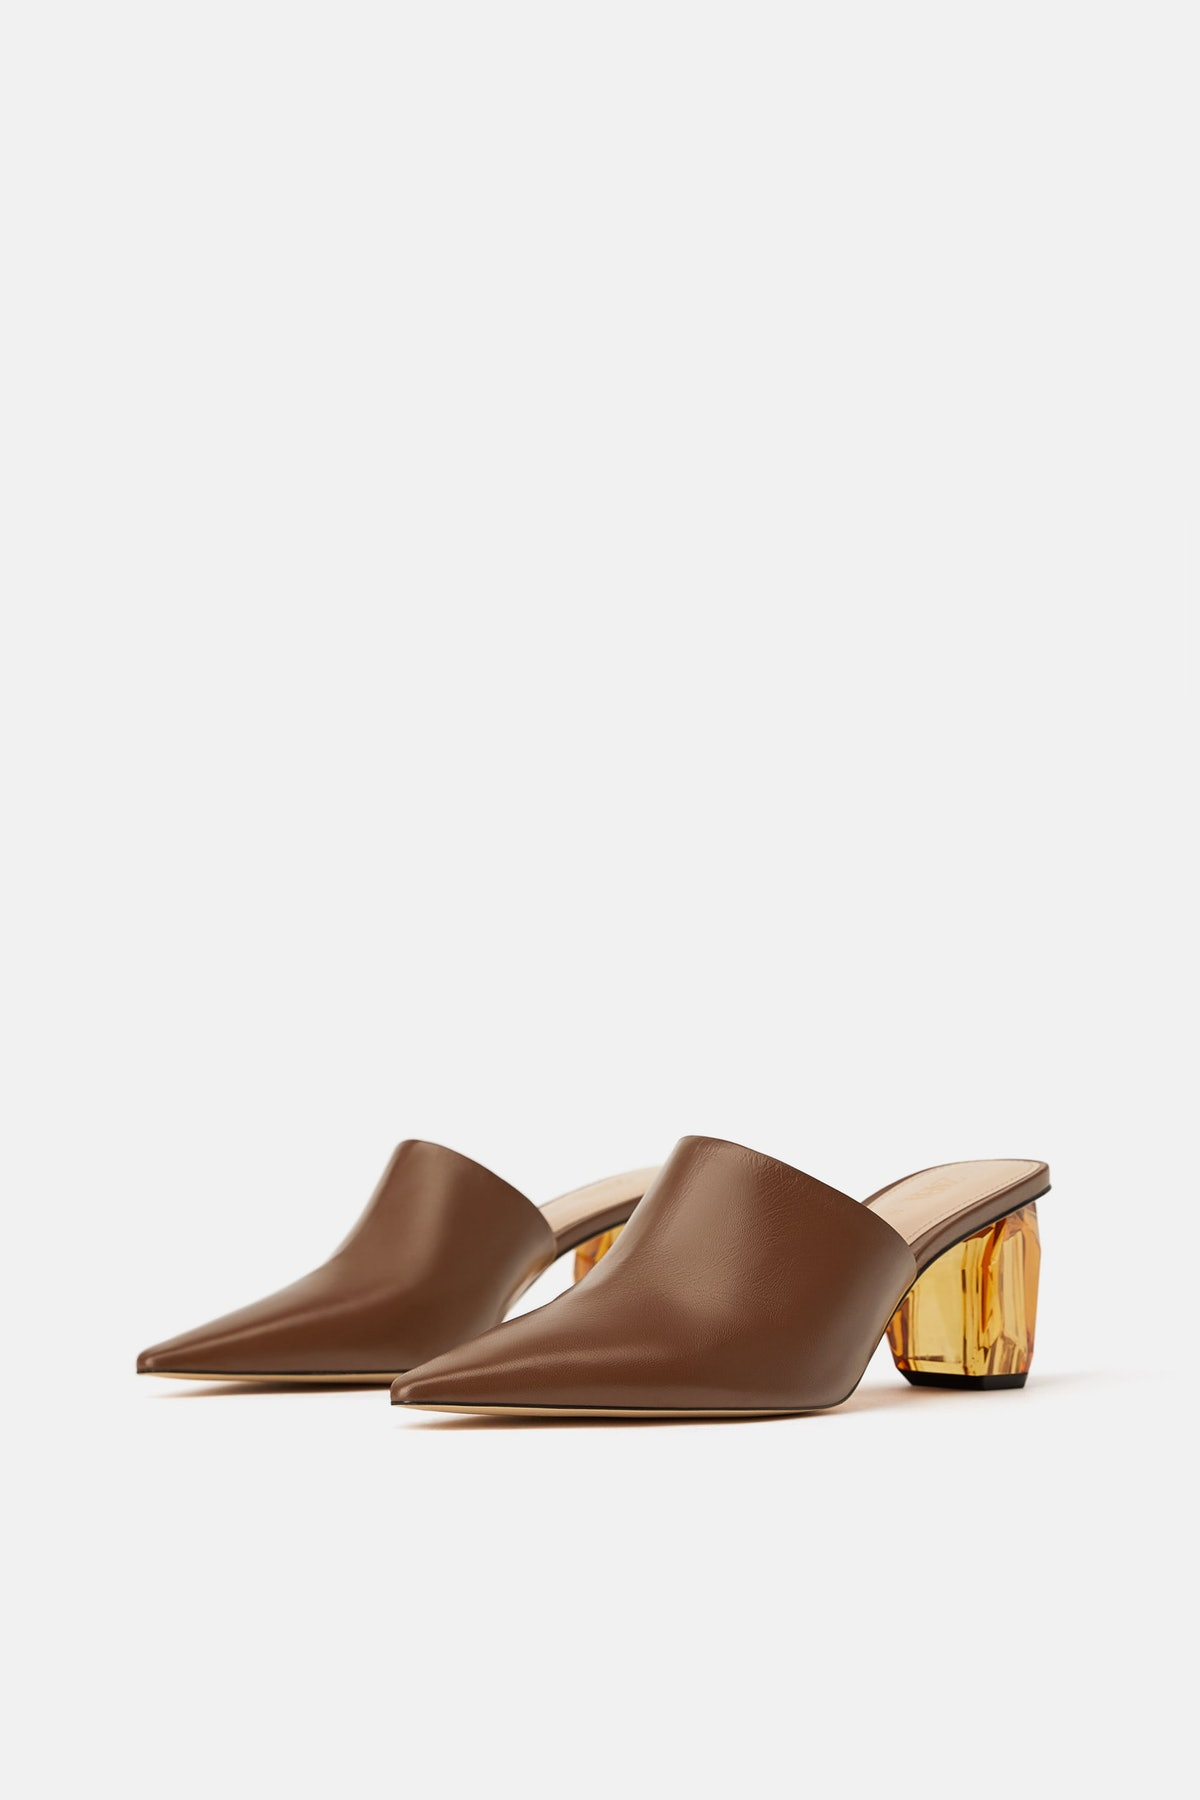 LEATHER MULES WITH GEOMETRIC HEELS